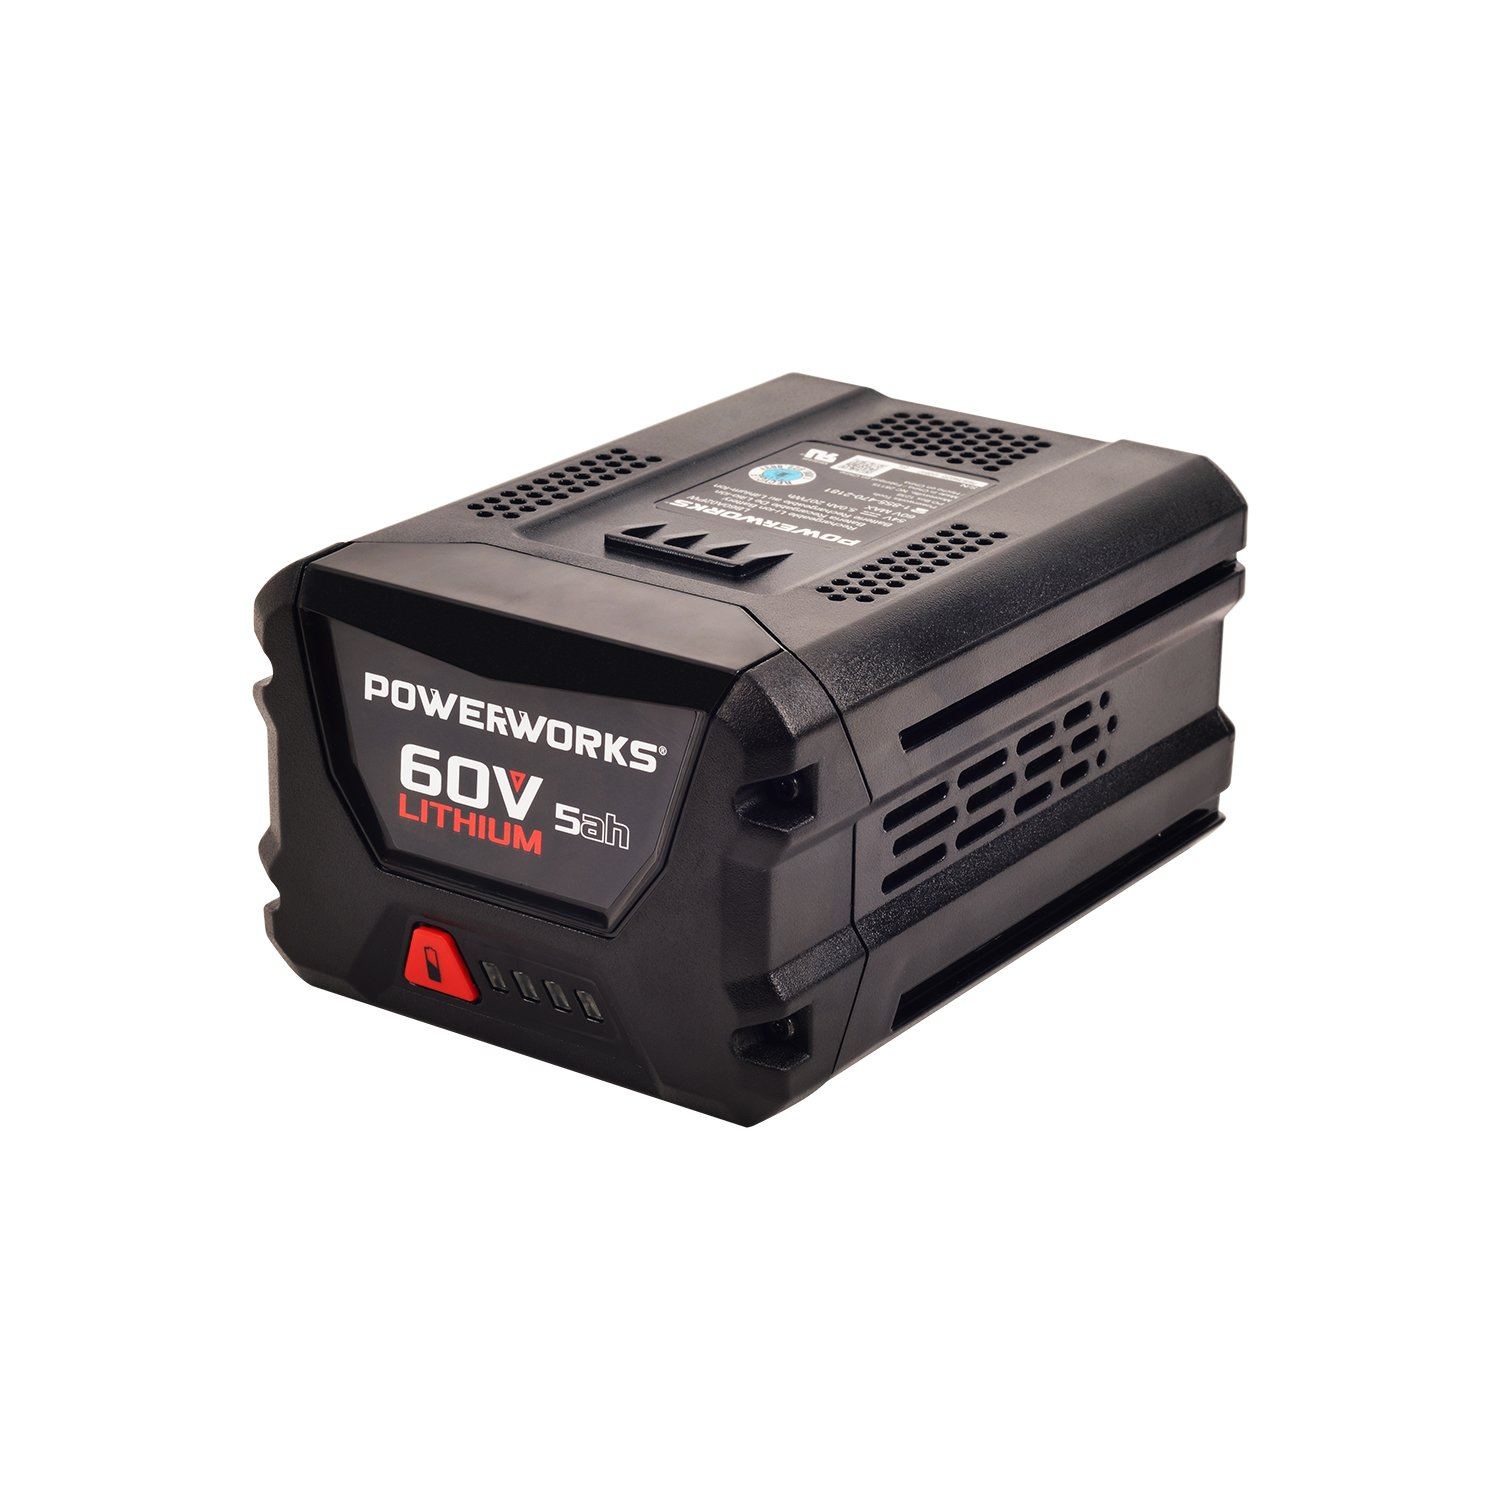 Works Power Powerworks 60V 5Ah Battery LB60A02PW